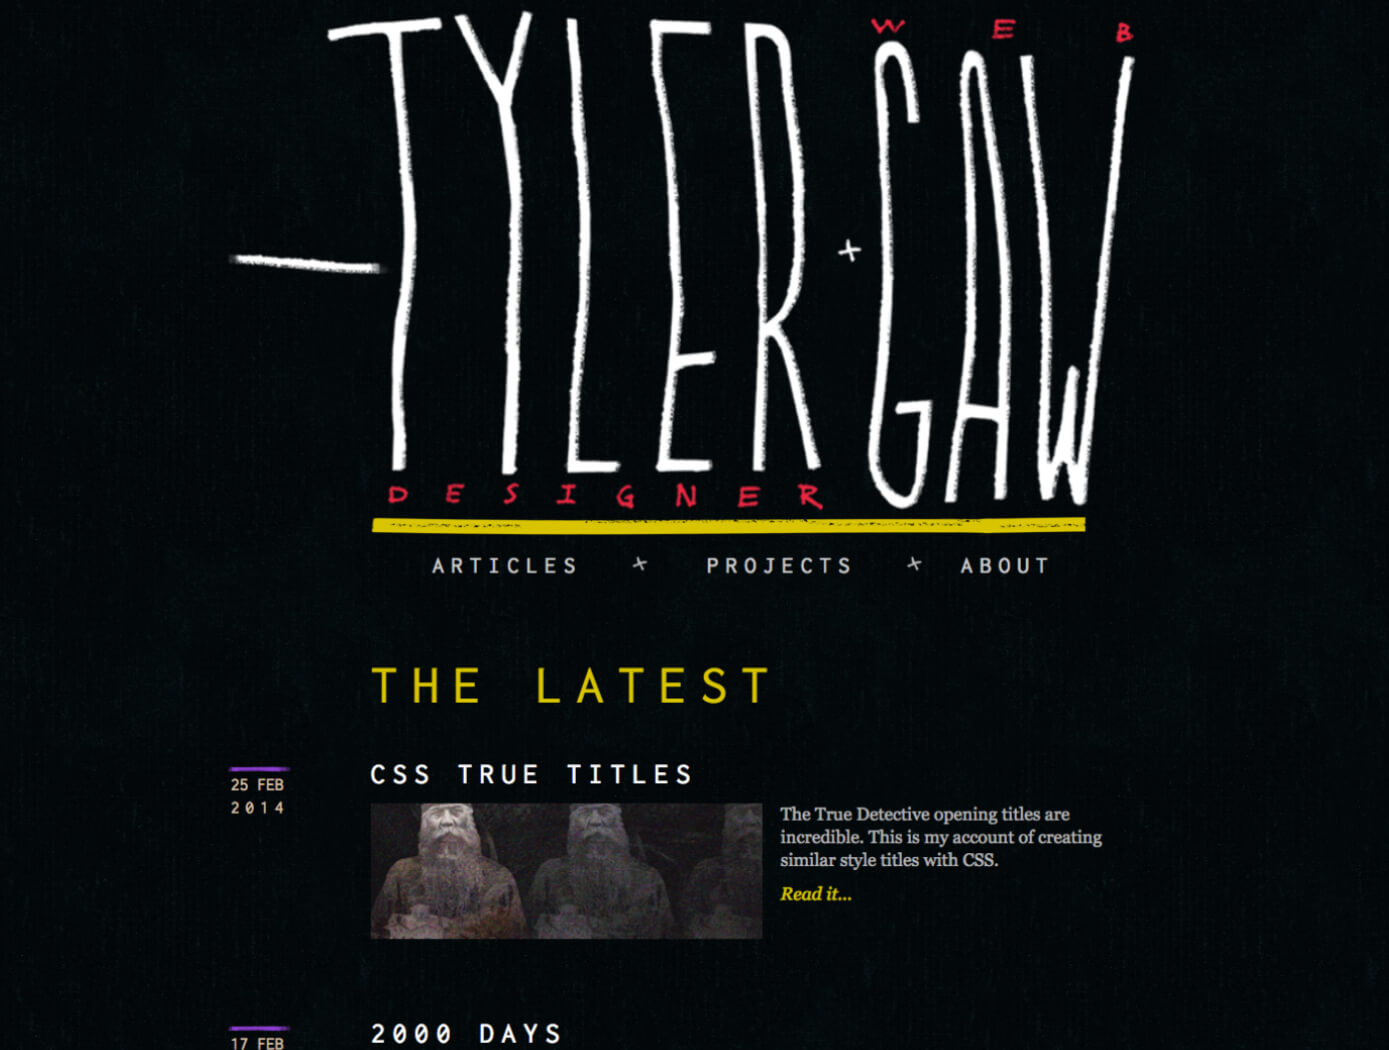 A screenshot of version 4 of tylergaw.com